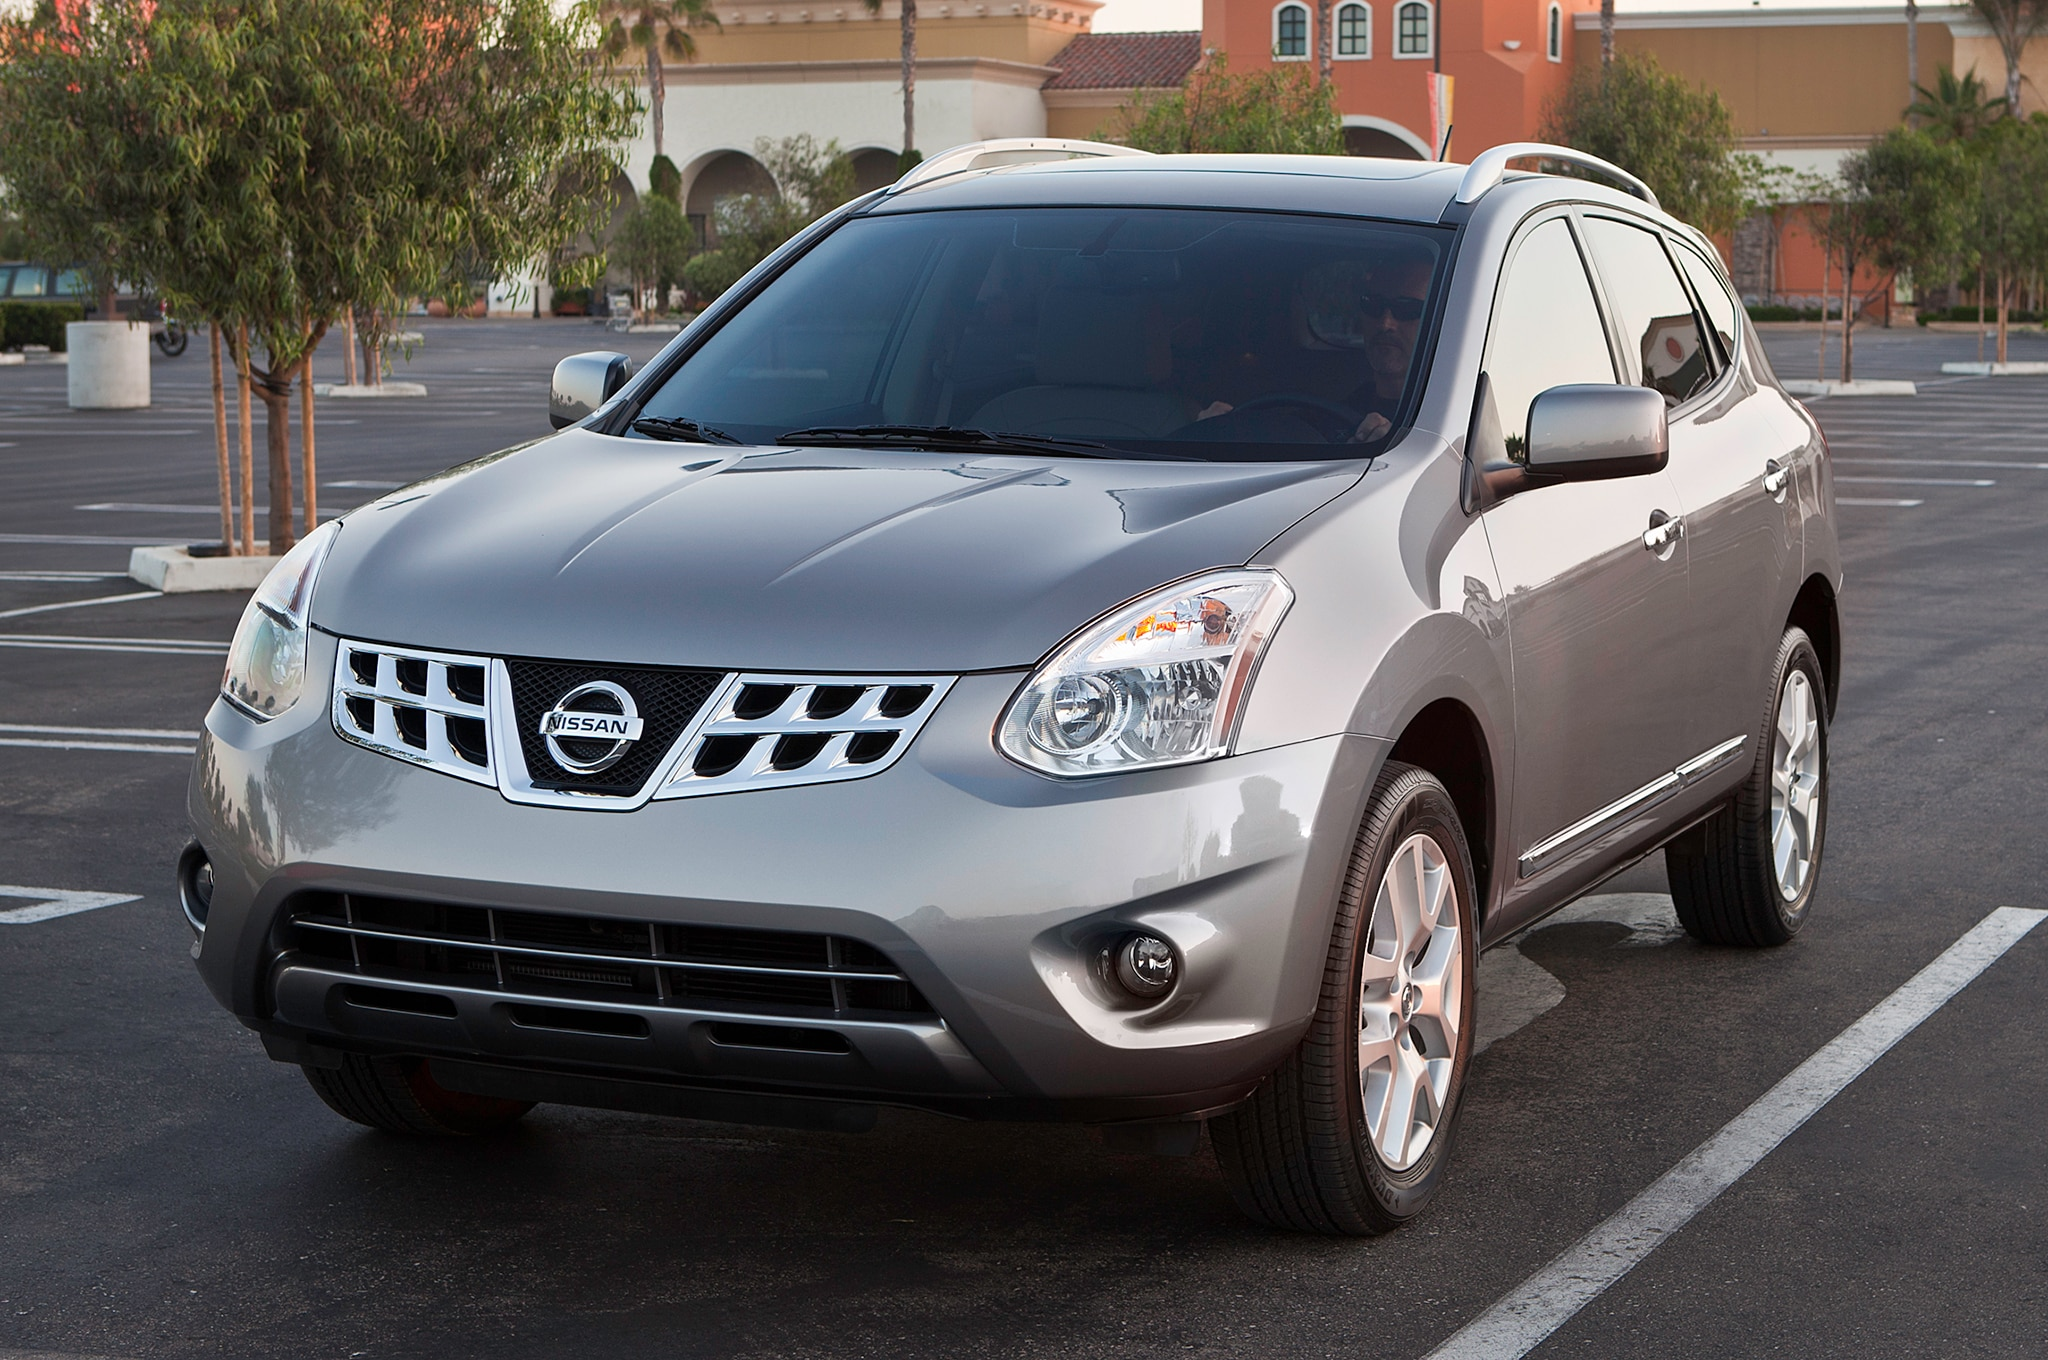 2013 Nissan Rogue Three Quarters Drivers View 0011